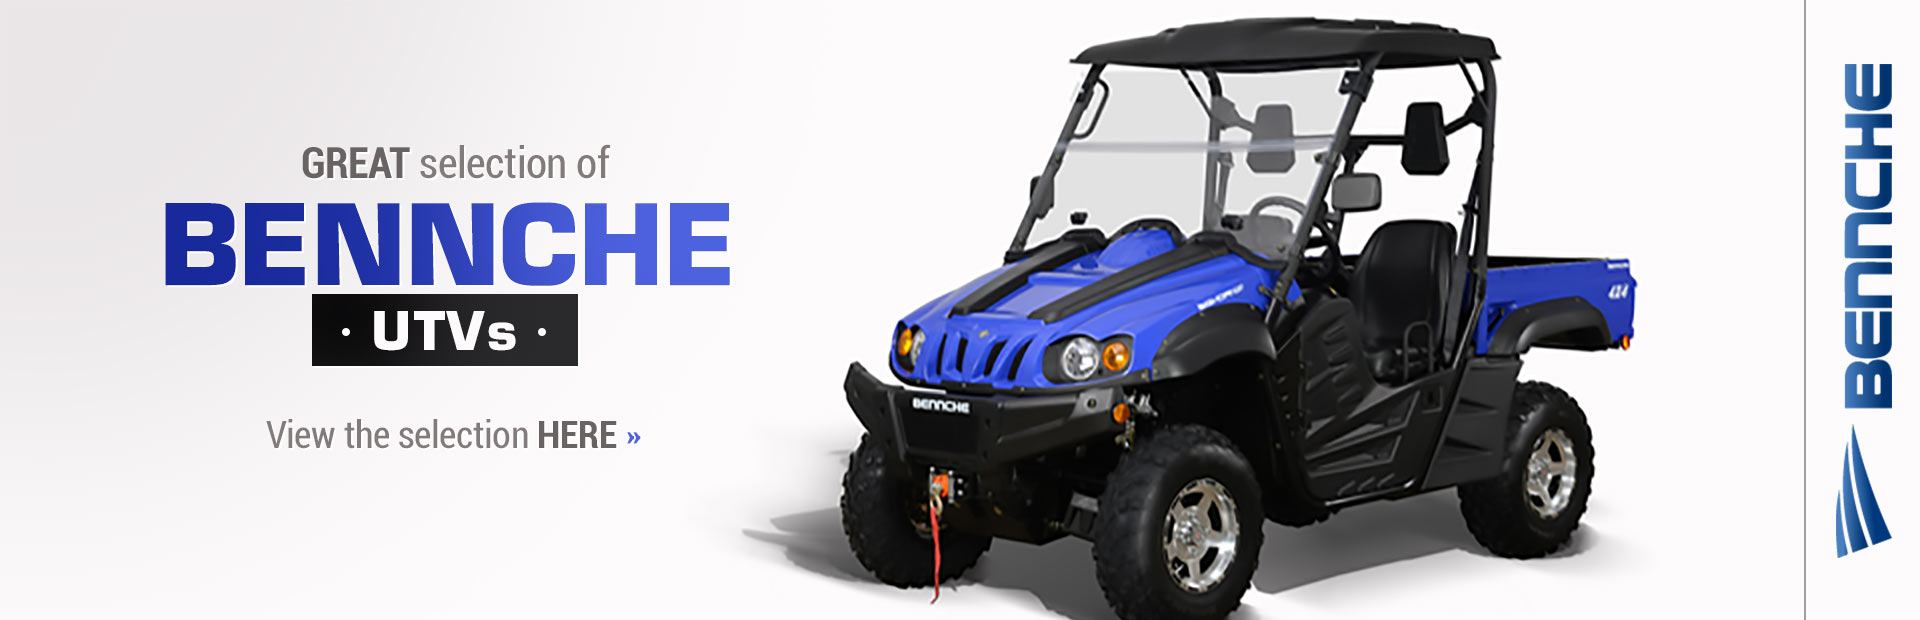 Benneche UTVs: Click here to view details!